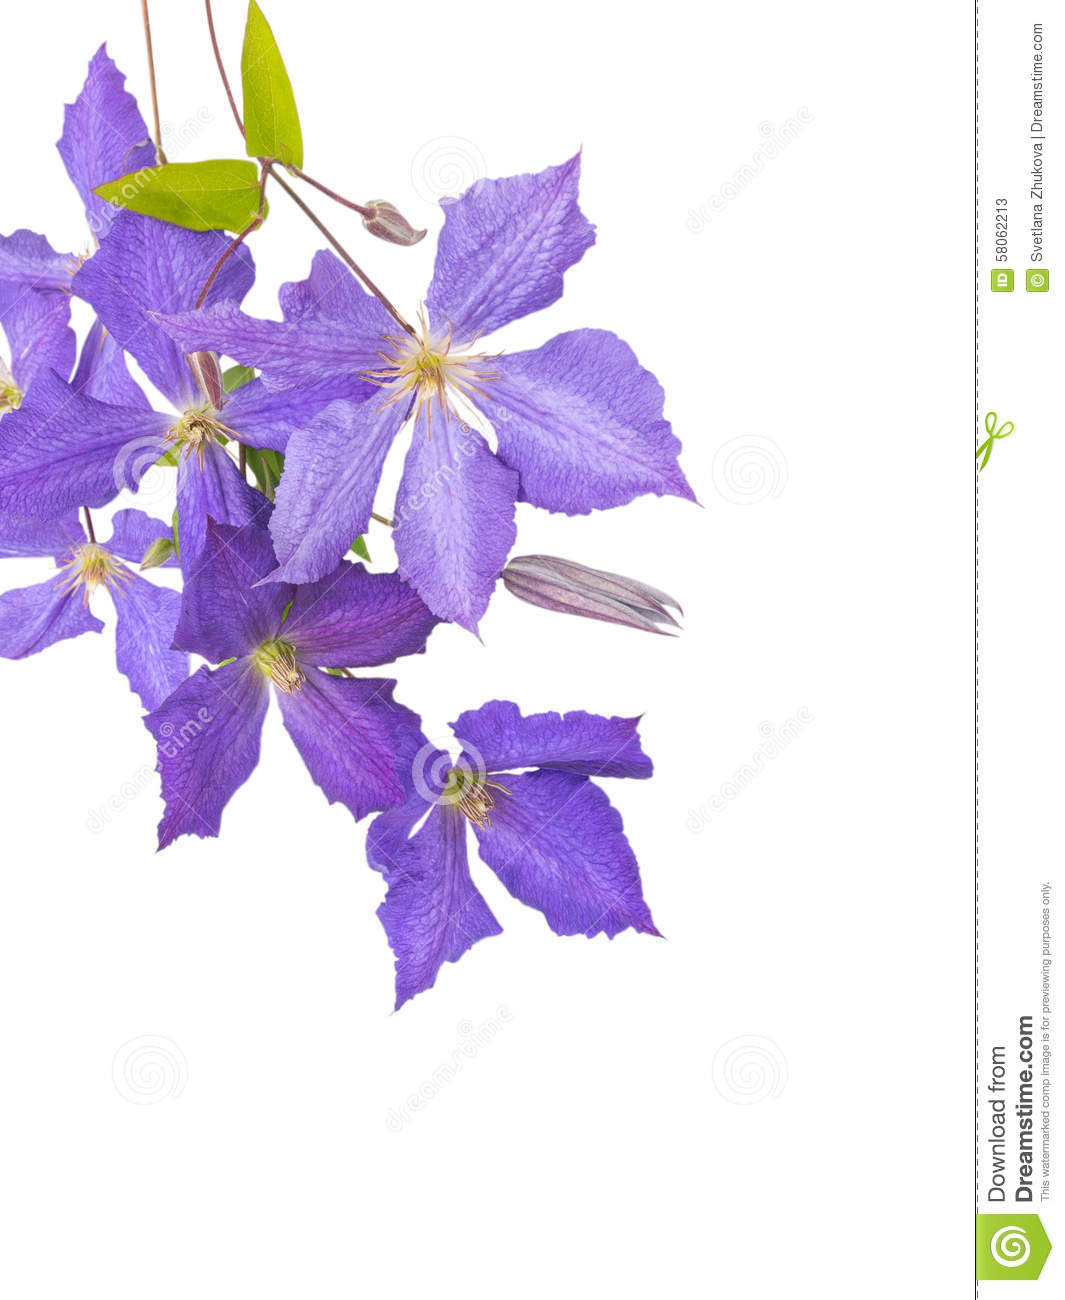 Clematis Jackmanii Flowers, Buds And Leaves Stock Photo.